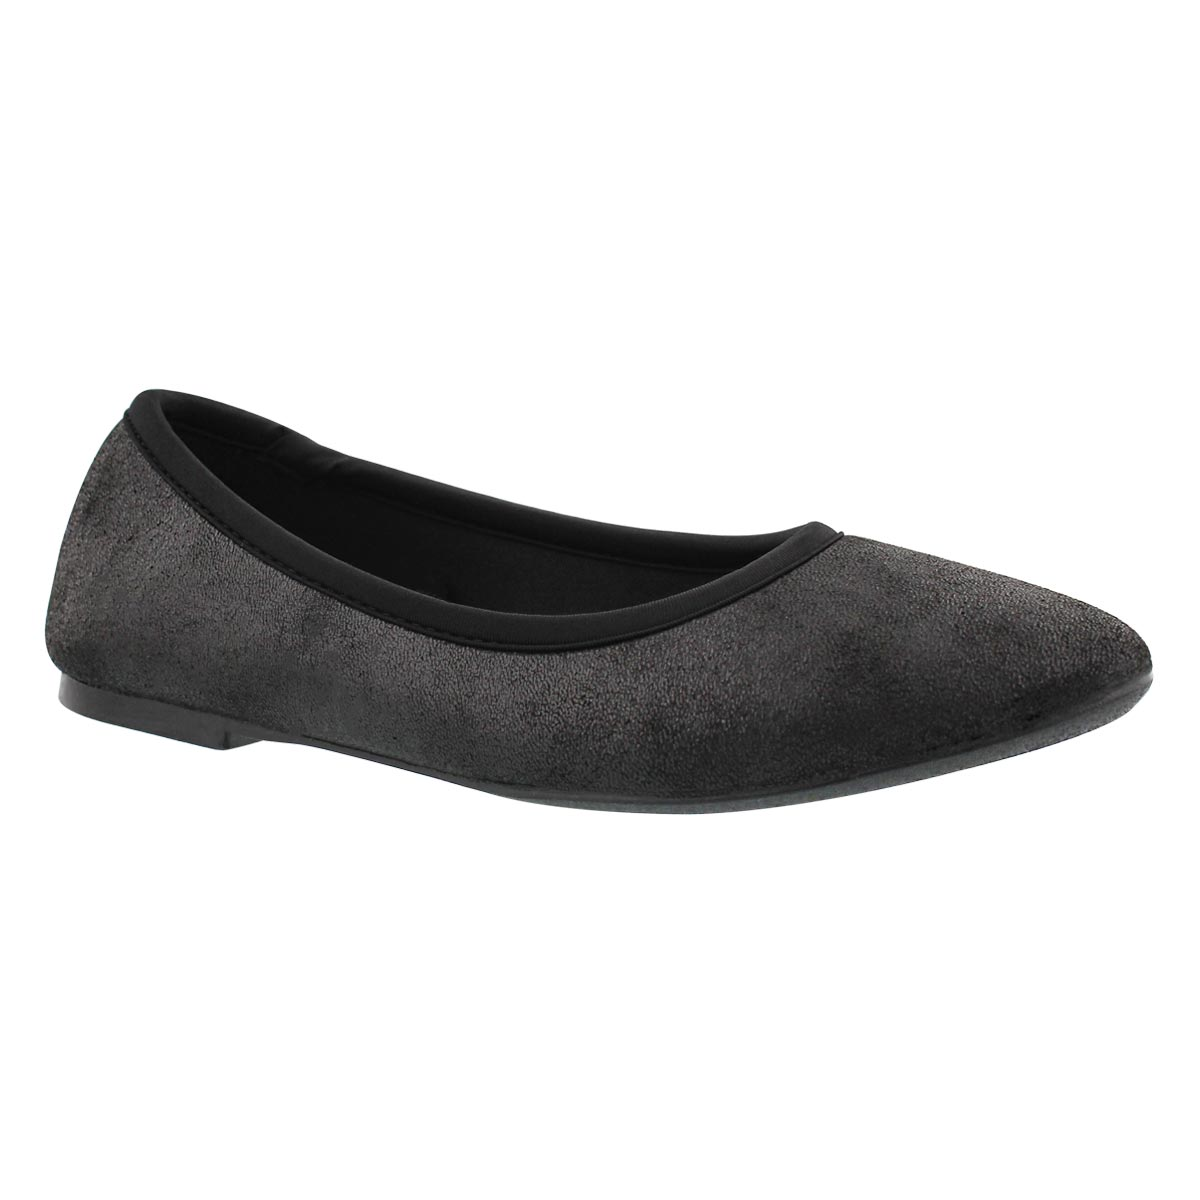 Lds Cleo Sincere blk casual flat